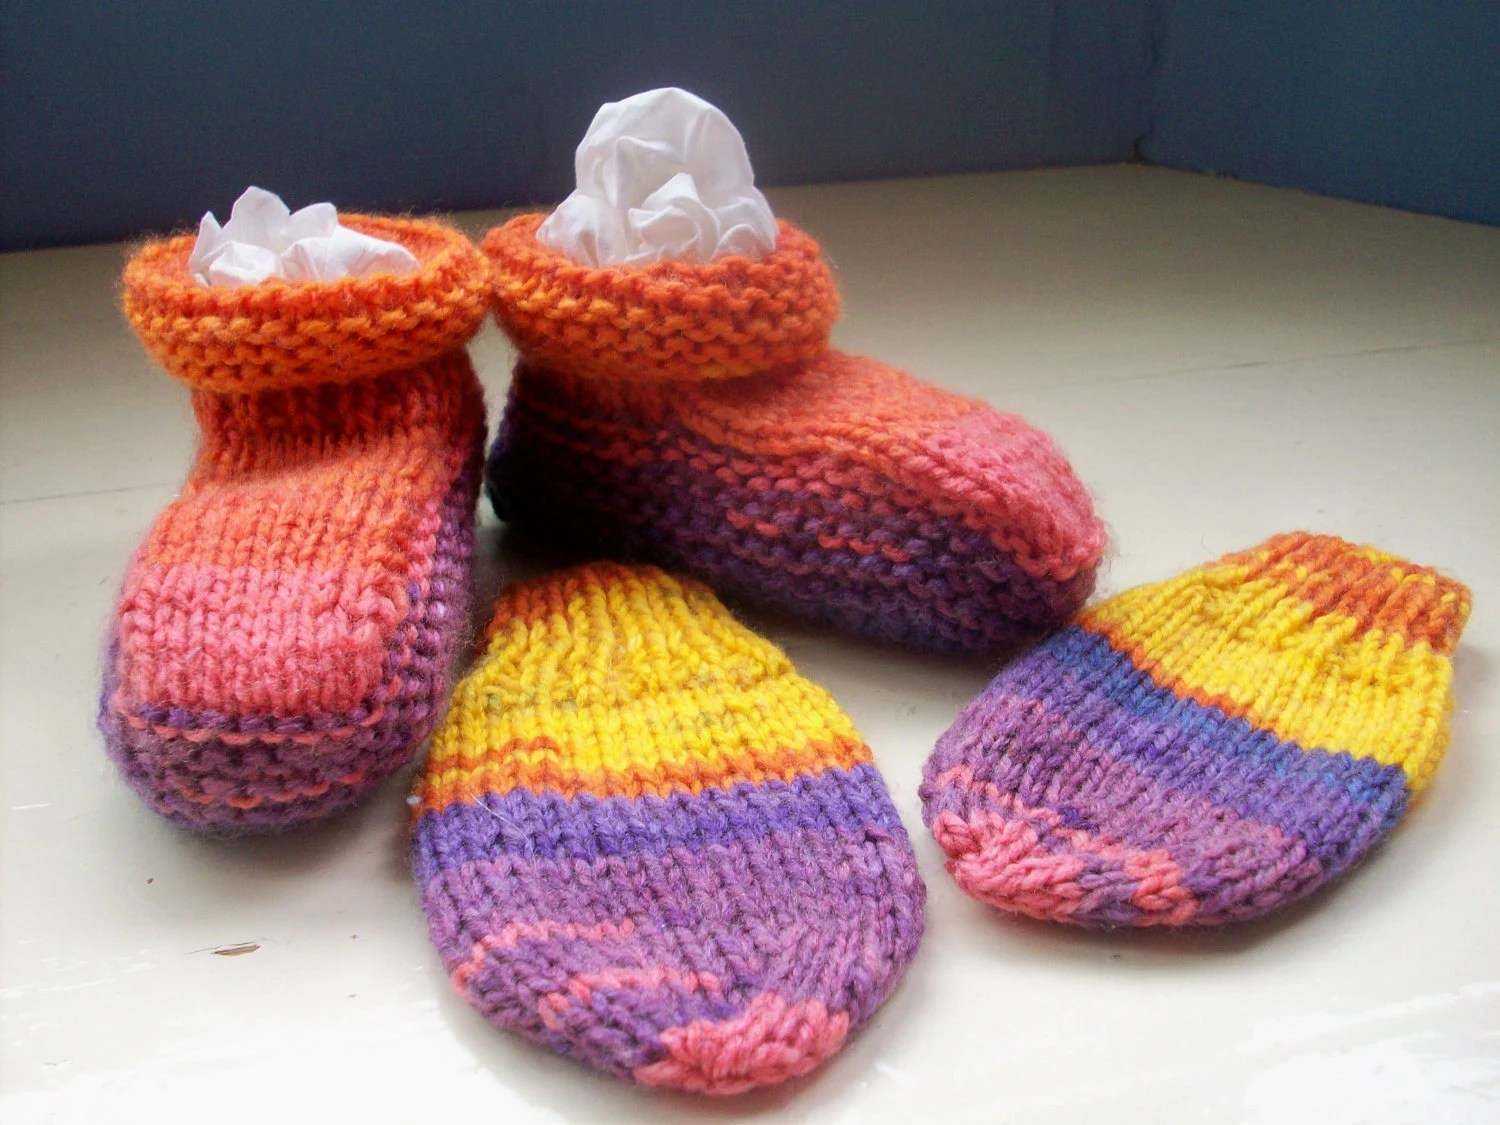 Baby booties mittens set - unisex booties and mittens 6 to 9 months approx